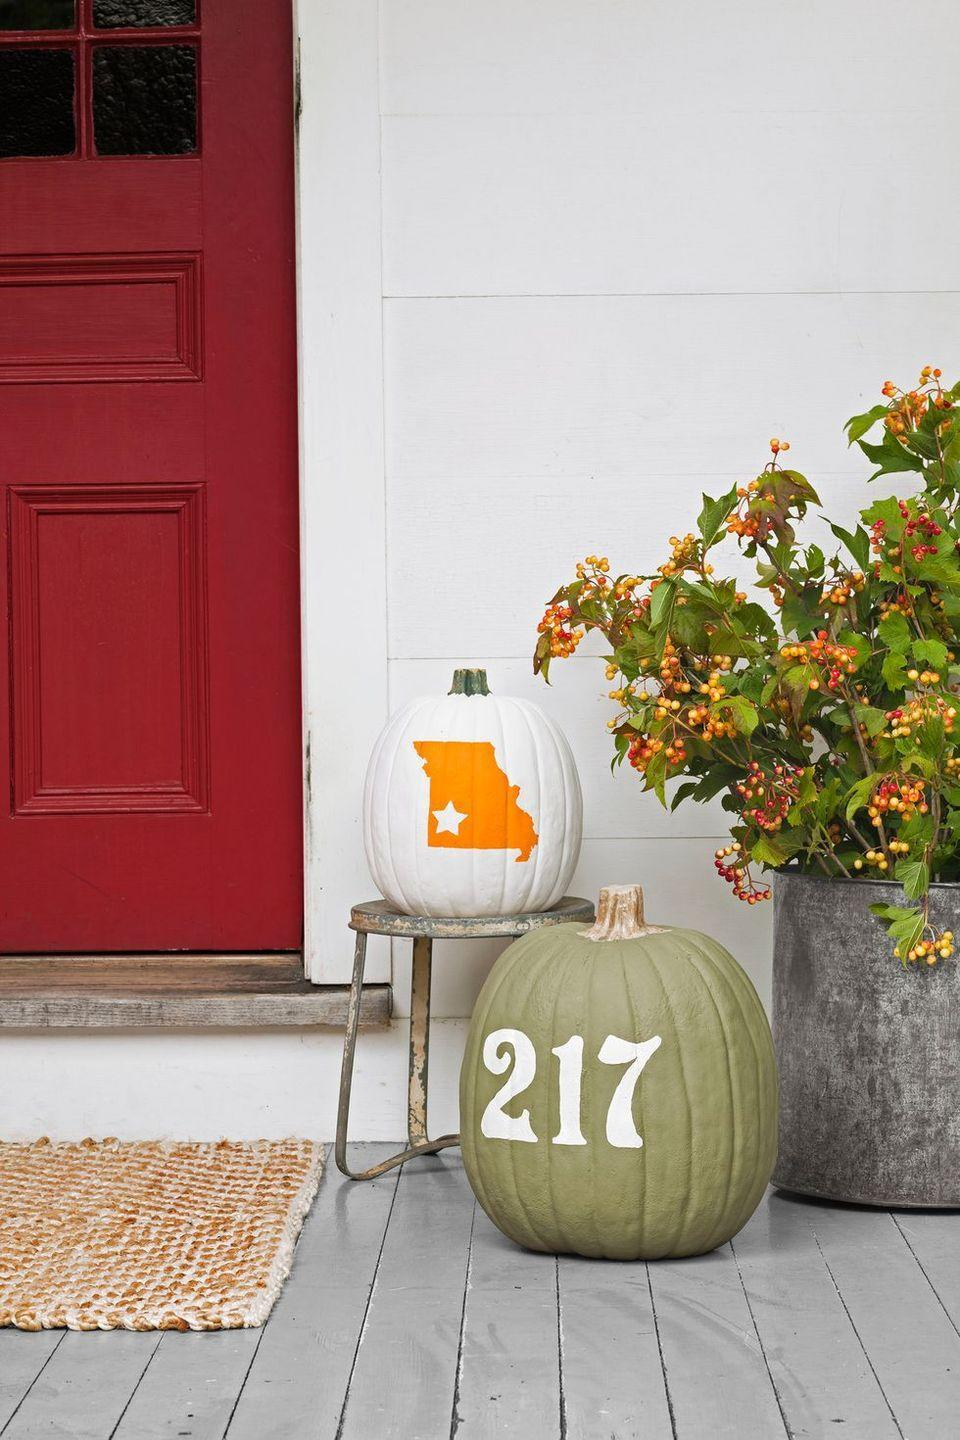 """<p>Put your hometown pride on full display with this creative pumpkin design. Begin by printing a decal of your state's shape. After you apply it to your pumpkin, cover it in two coats of acrylic paint. (Keep in mind that it takes about 30 minutes for each coat to dry.) Finally, remove the decal once your pumpkin is dry.</p><p><a class=""""link rapid-noclick-resp"""" href=""""https://go.redirectingat.com?id=74968X1596630&url=https%3A%2F%2Fwww.etsy.com%2Flisting%2F206420143%2Ffree-shipping-state-outline-with-heart&sref=https%3A%2F%2Fwww.goodhousekeeping.com%2Fholidays%2Fhalloween-ideas%2Fg1714%2Fno-carve-pumpkin-decorating%2F"""" rel=""""nofollow noopener"""" target=""""_blank"""" data-ylk=""""slk:SHOP STATE DECAL"""">SHOP STATE DECAL</a></p>"""